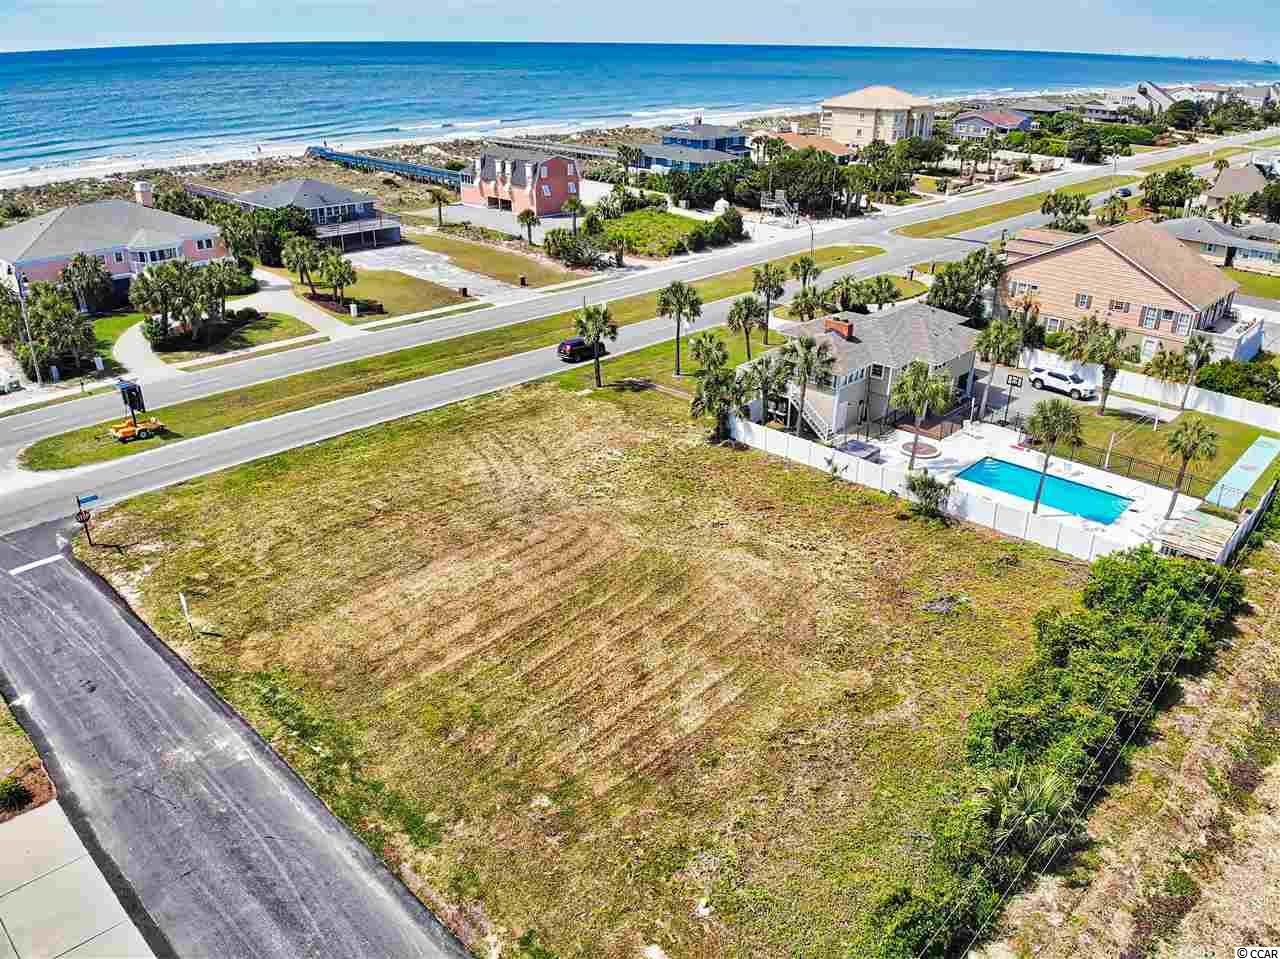 Don't miss this very rare opportunity to own a corner lot in Tilghman Estates section directly across the street from the ocean.  This lot is situated on the corner of 17th Avenue N. and Ocean Blvd. surrounded by some of the most spectacular homes in North Myrtle Beach.  Just steps to the ocean with direct access to the beach across the street.  Golf cart to Cherry Grove attractions or to Main Street for entertainment, restaurants and shopping.  Build your one of a kind dream home and start enjoying beach living at it's best.